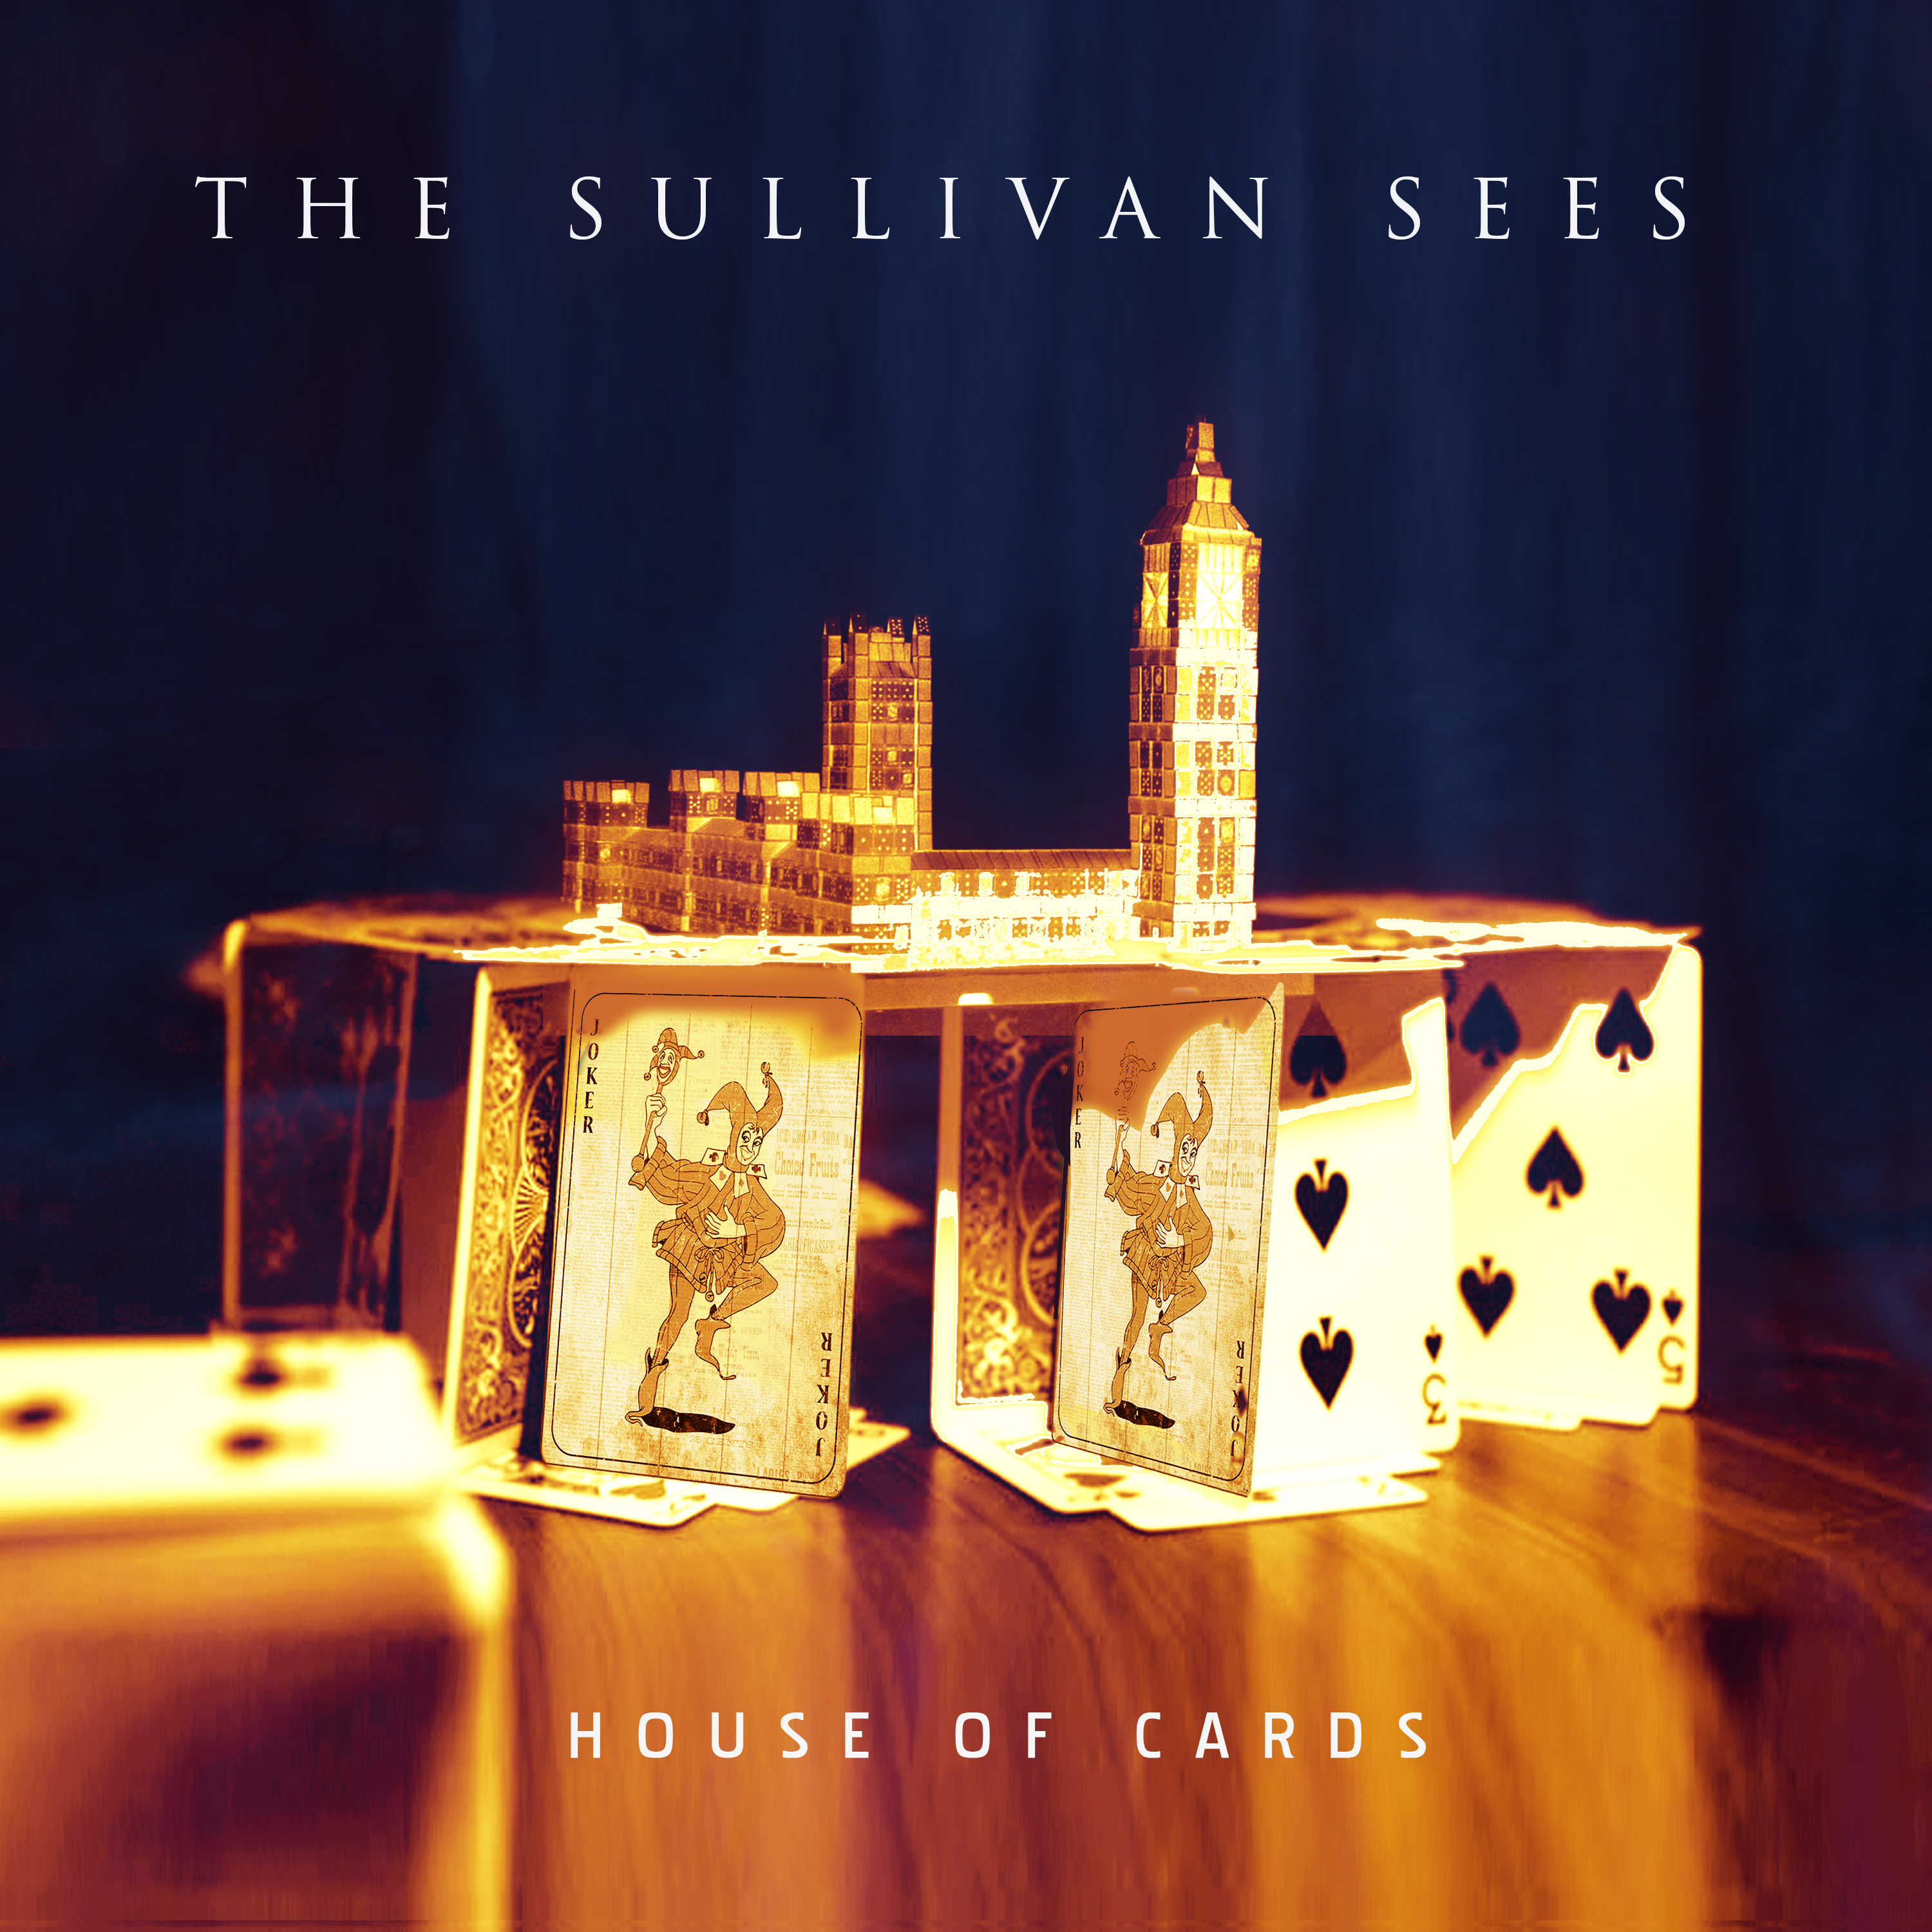 The Sullivan Sees - House of Cards